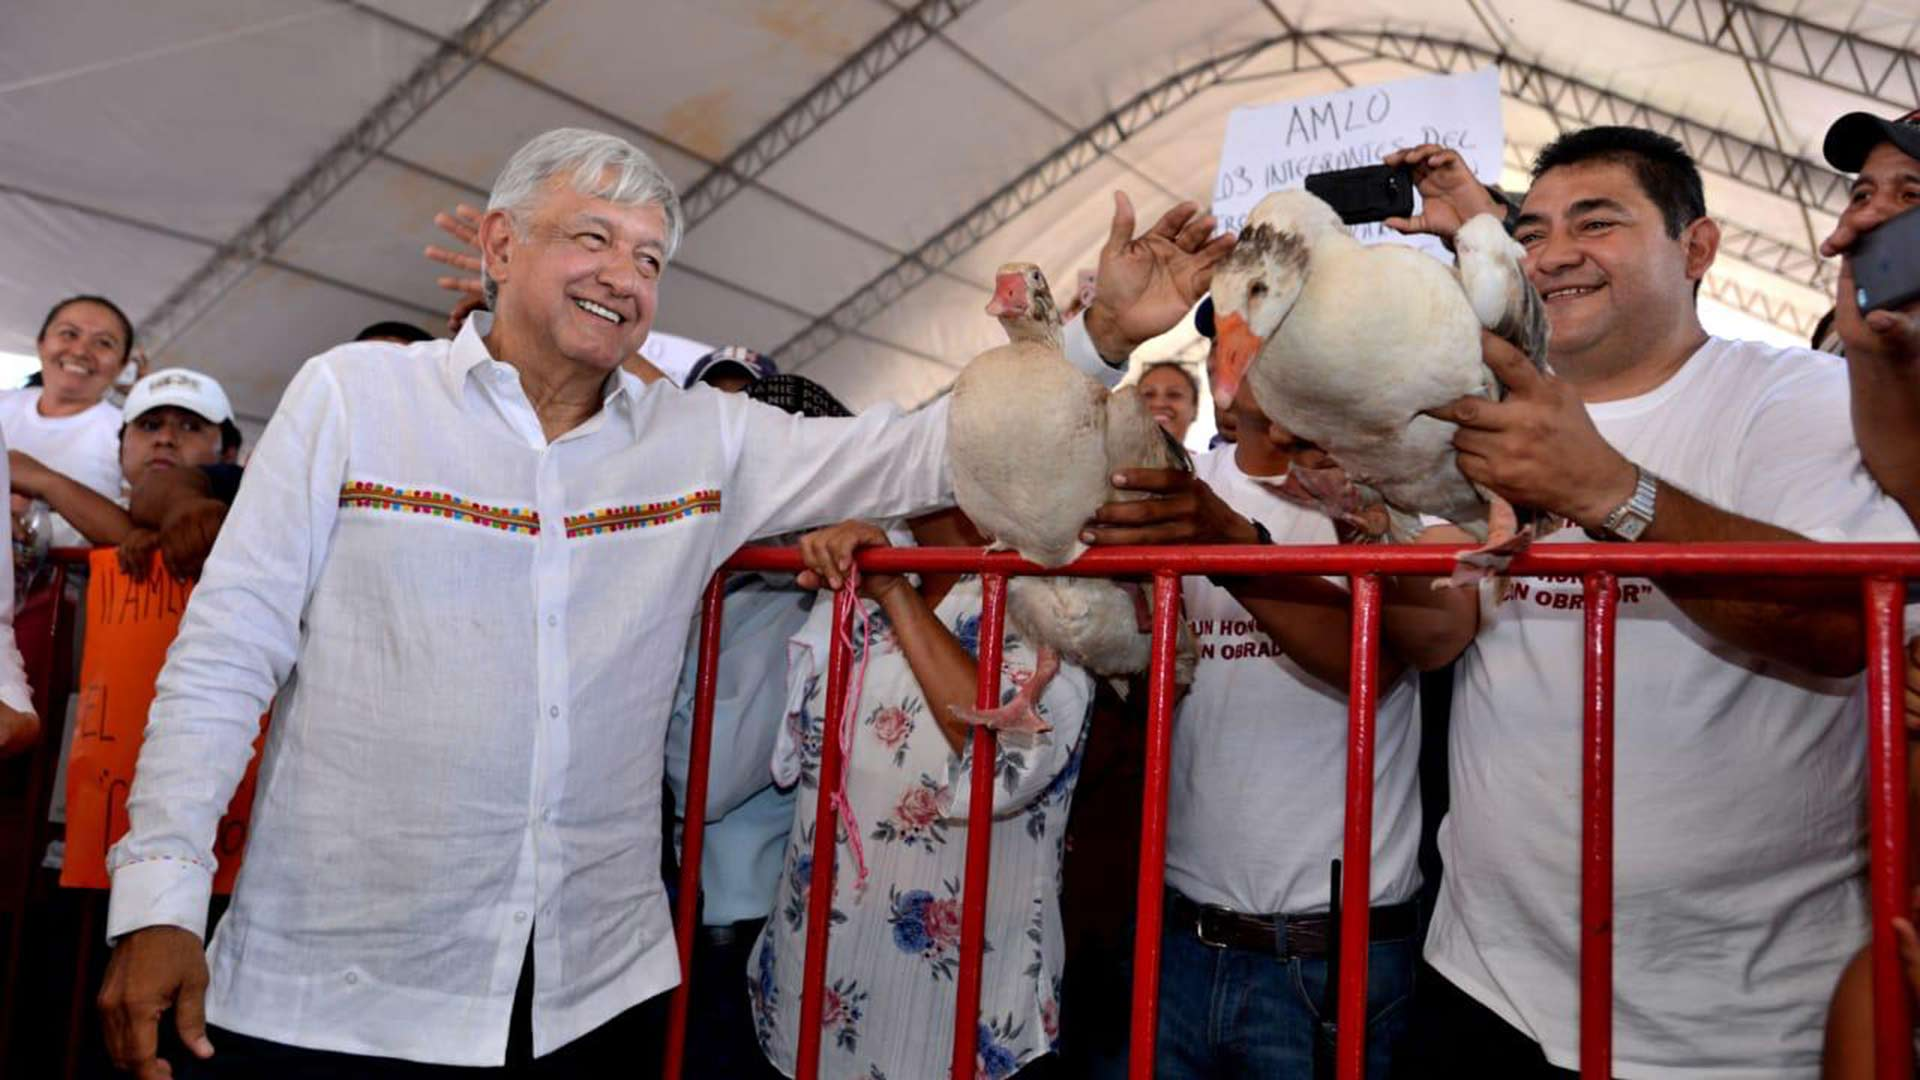 Mexican President Andrés Manuel López Obrador, or AMLO, during a rally in the state of Campeche, Mexico, February 2019.